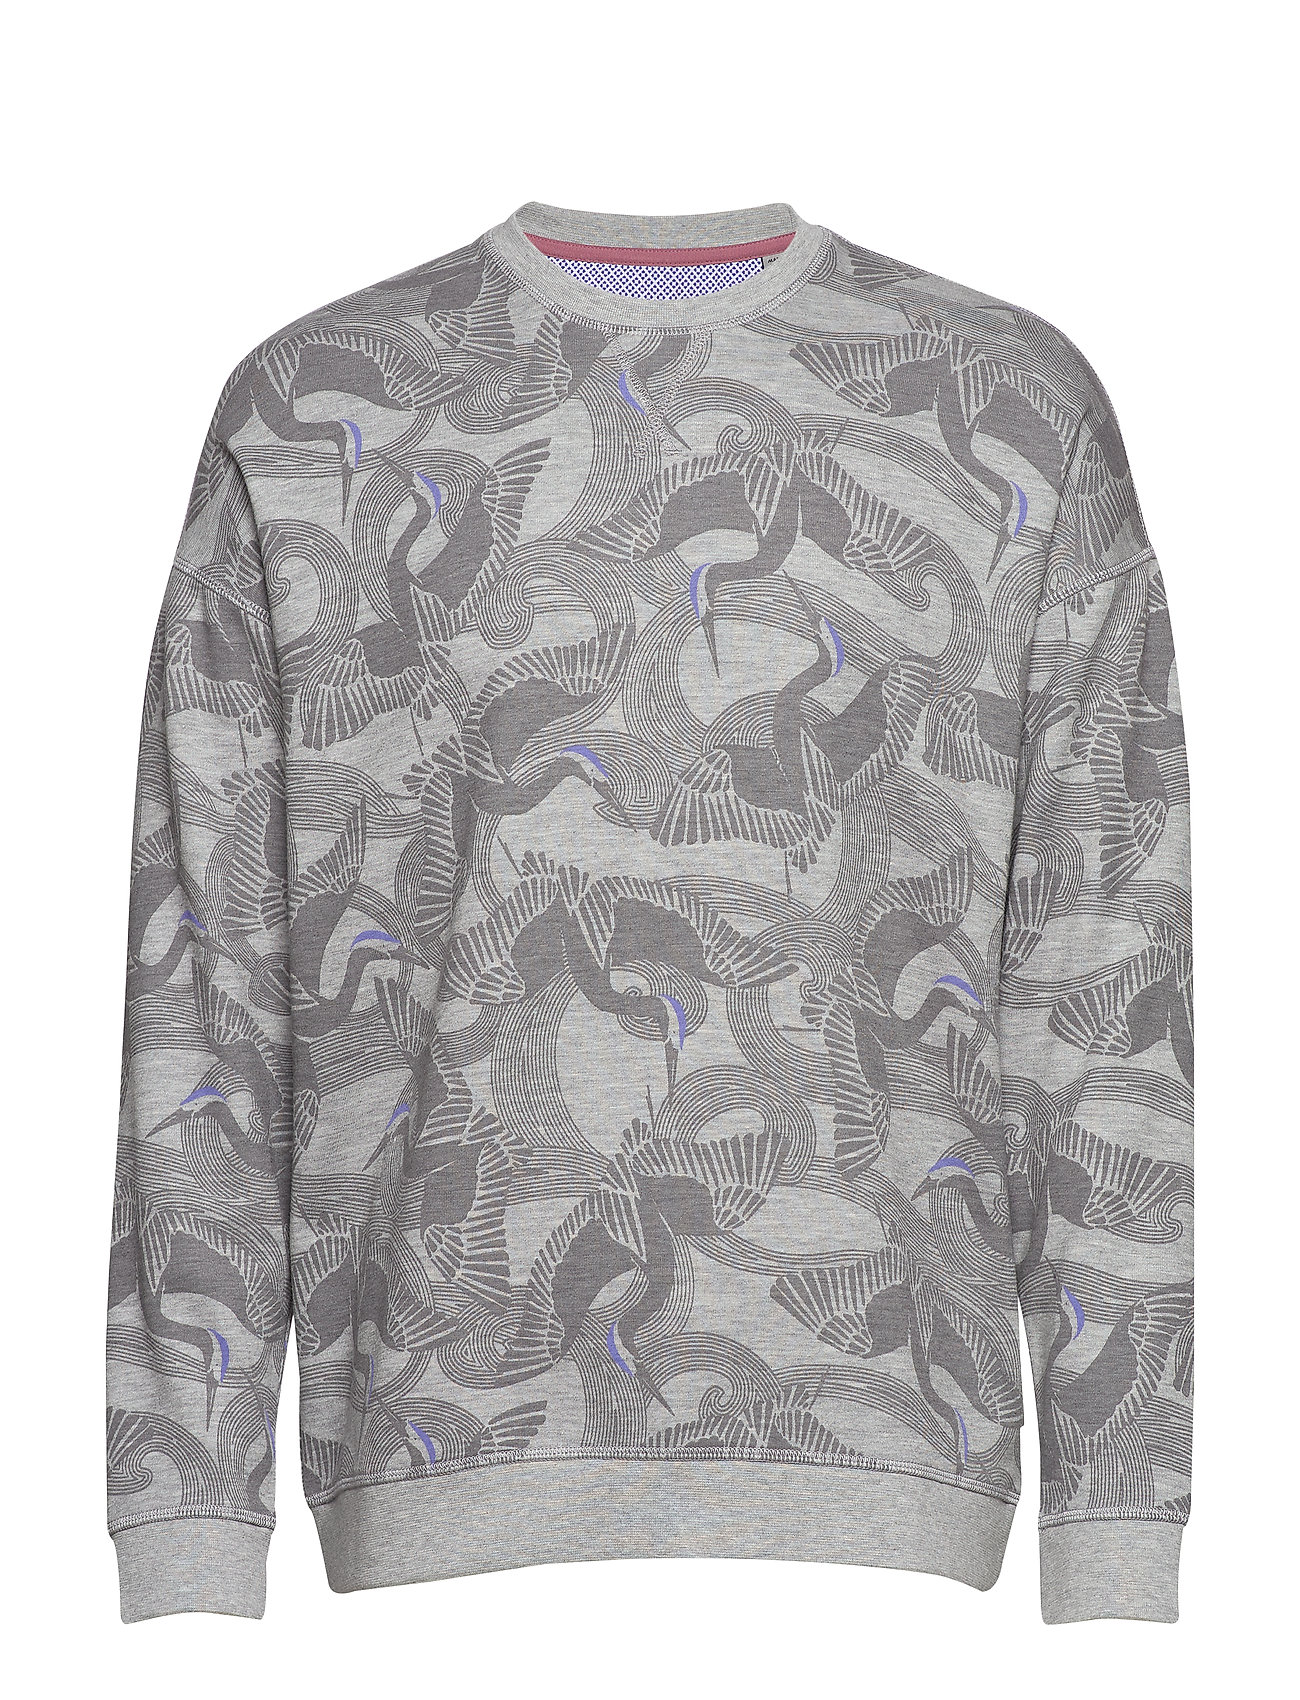 Ted Baker SWECON - 05 GREY MARL